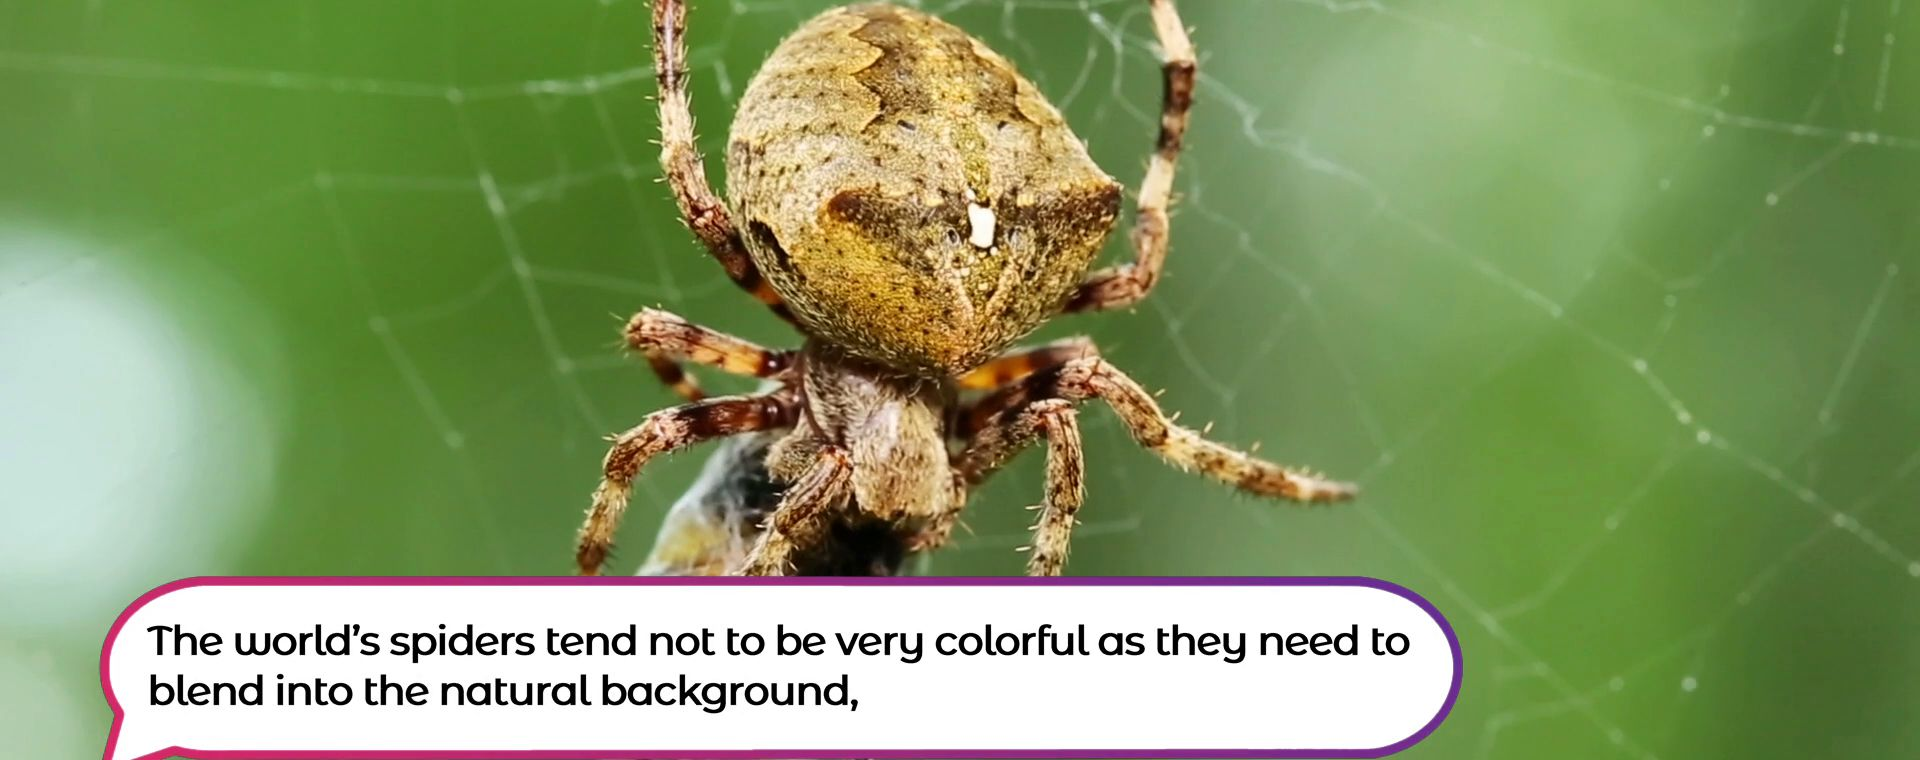 MOST COLORFUL SPIDERS